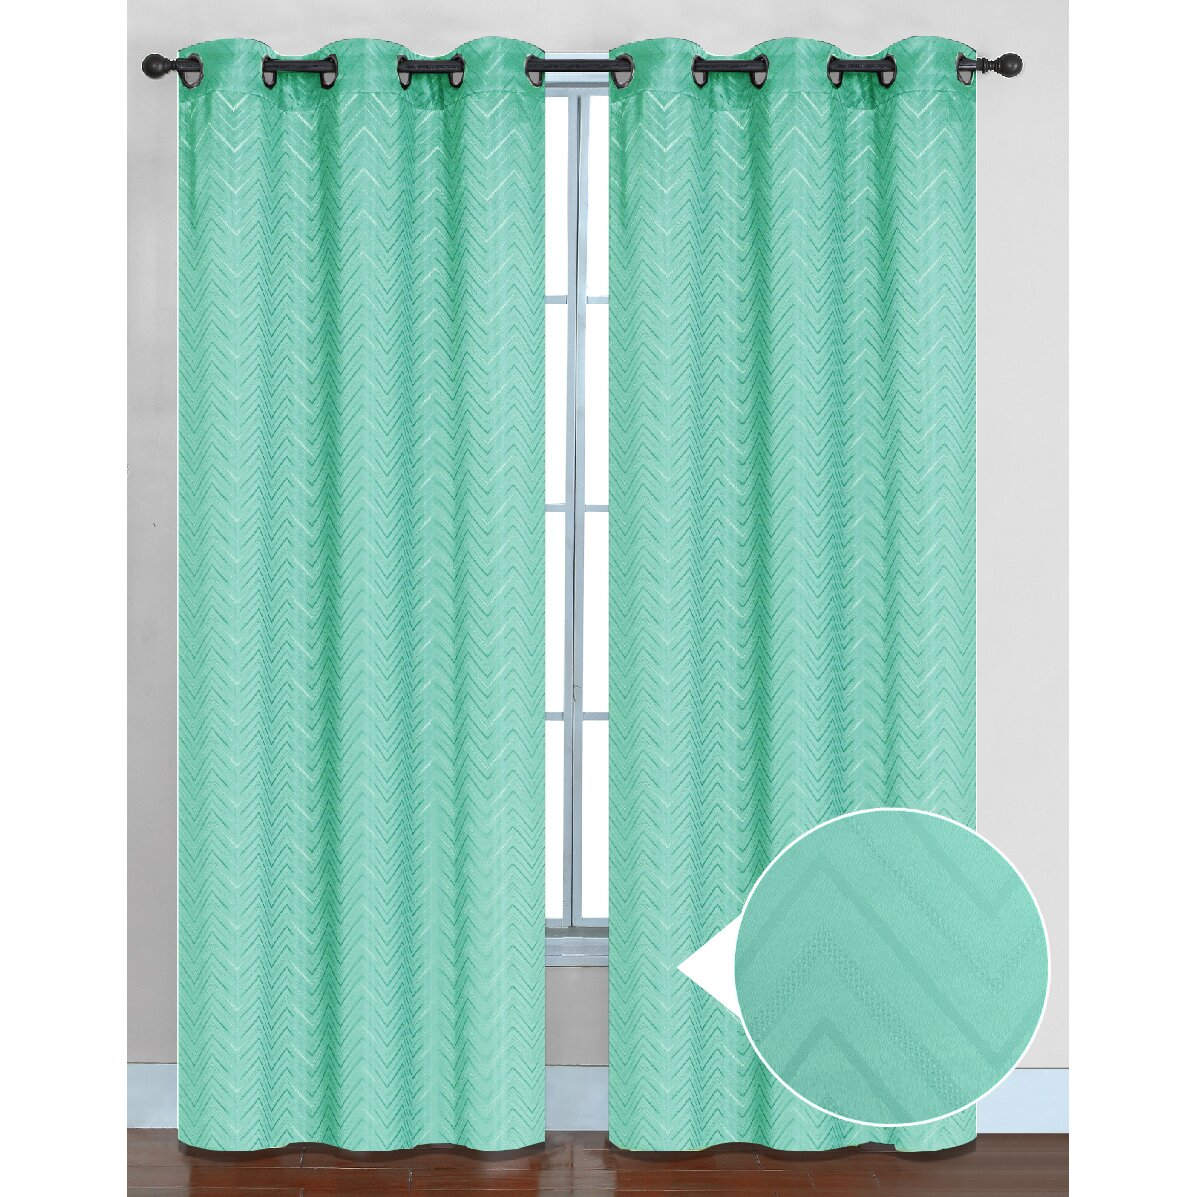 Chevron curtain panel by sweet home collection